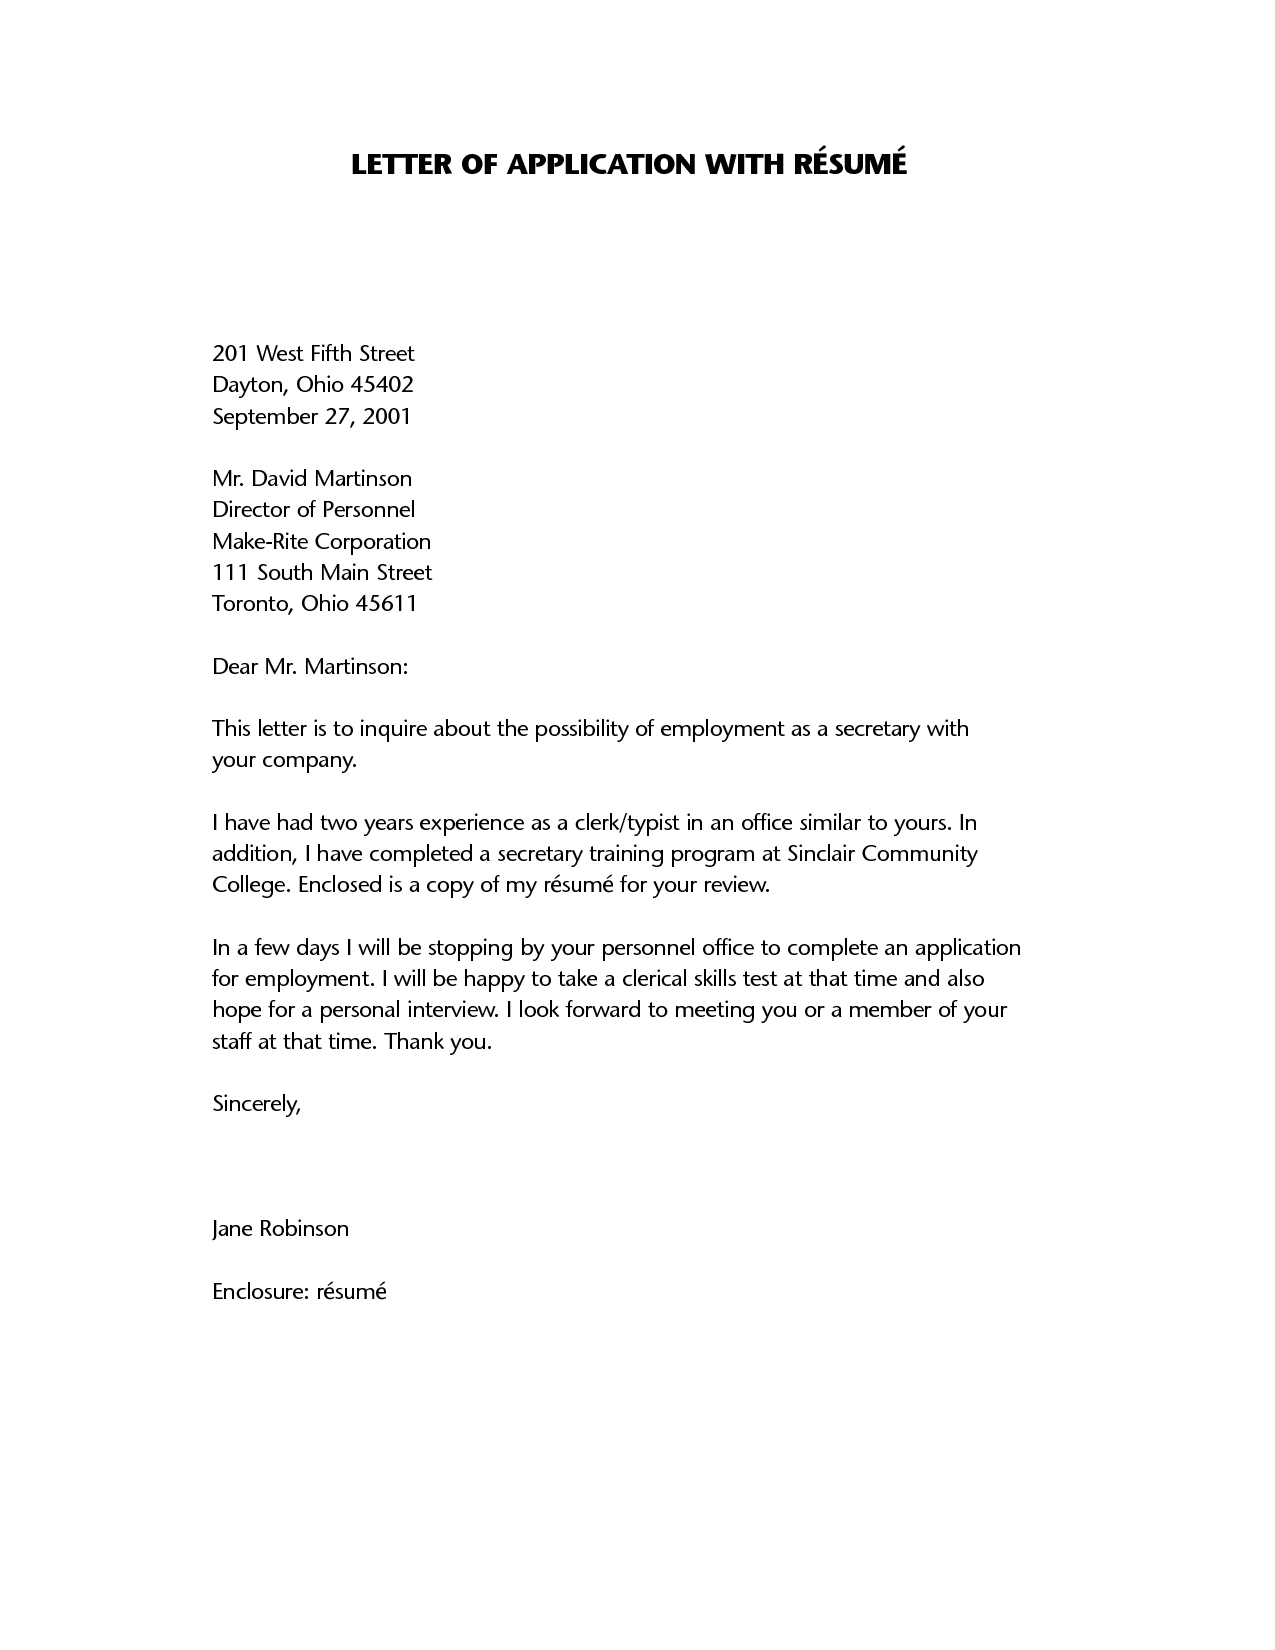 Job Cover Letter Template   Job Cover Letter Template we provide     Sample Templates